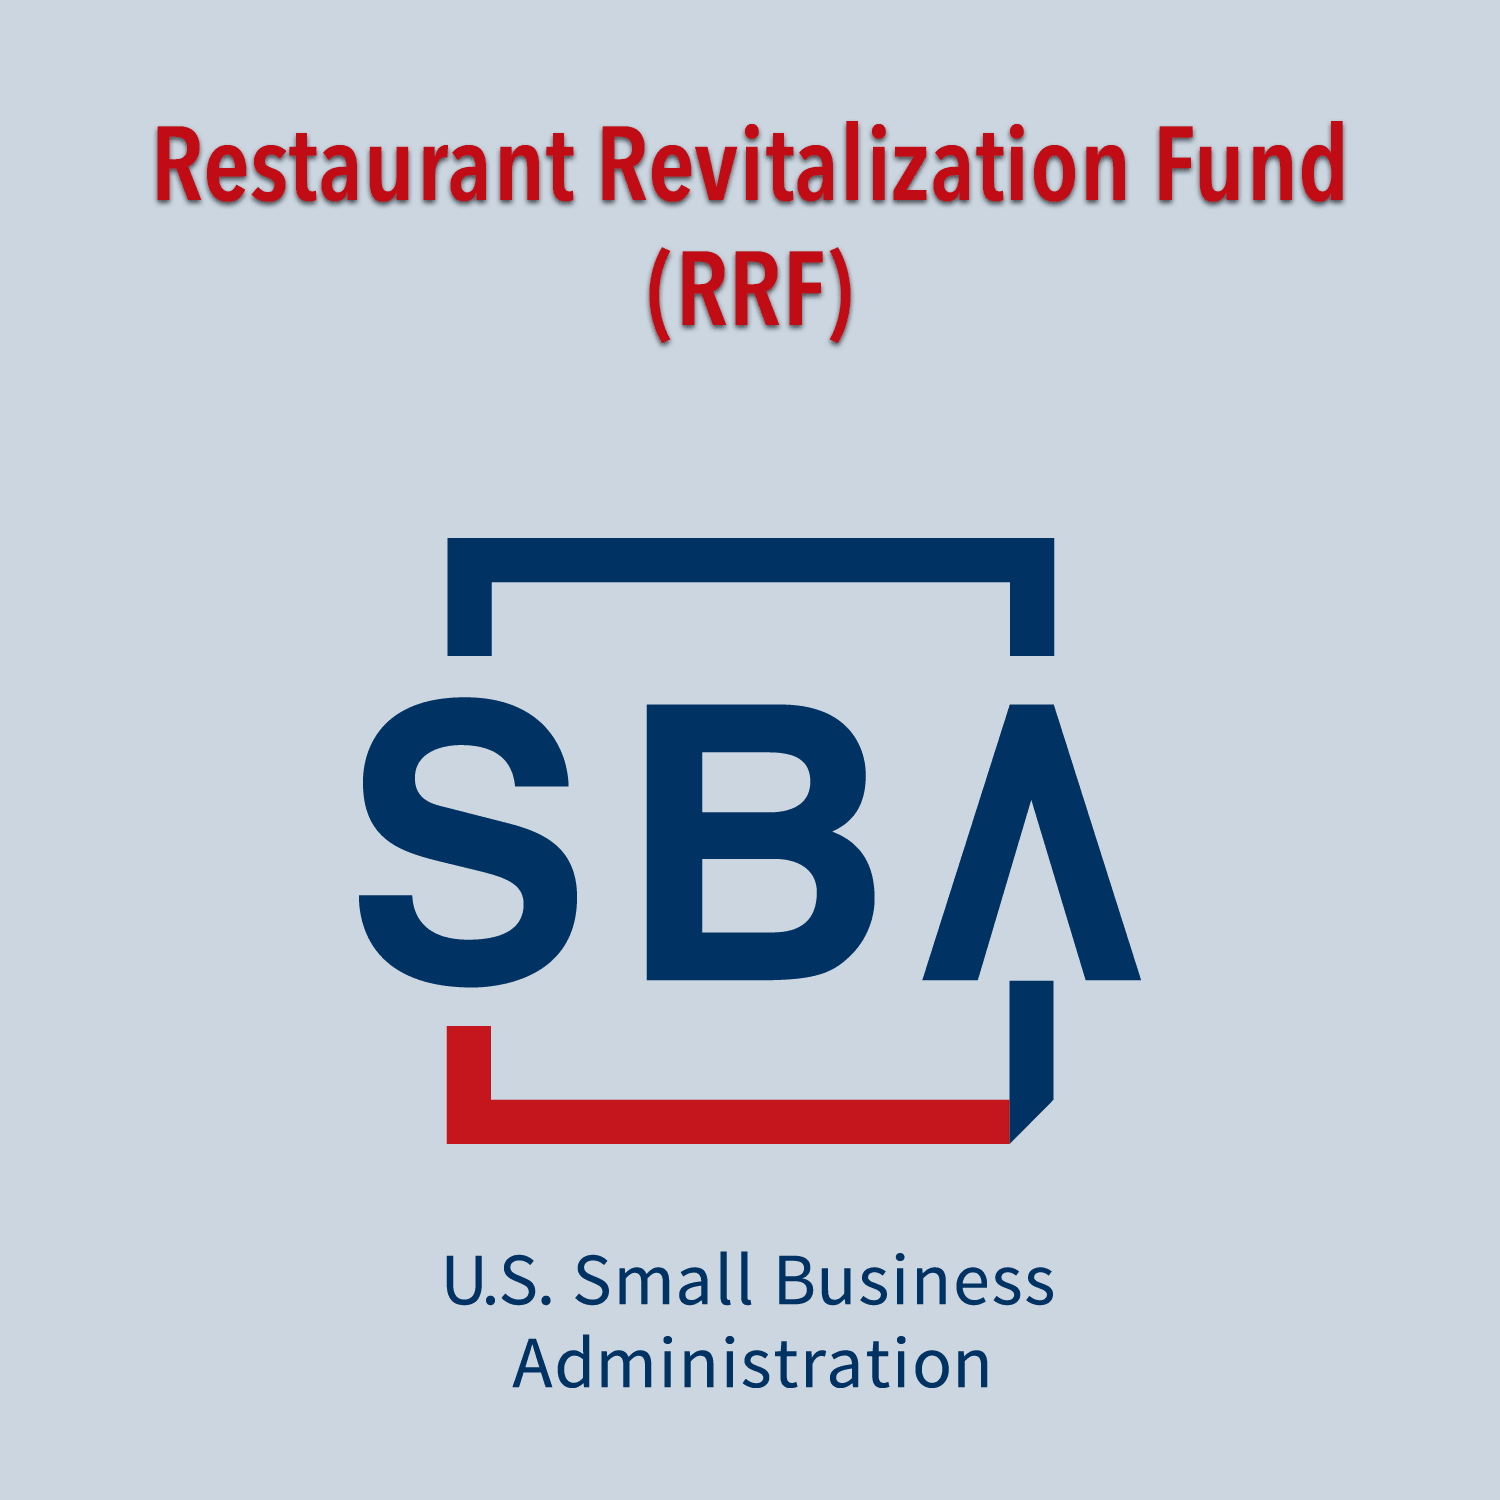 SBA Restaurant Revitalization Fund (RRF)